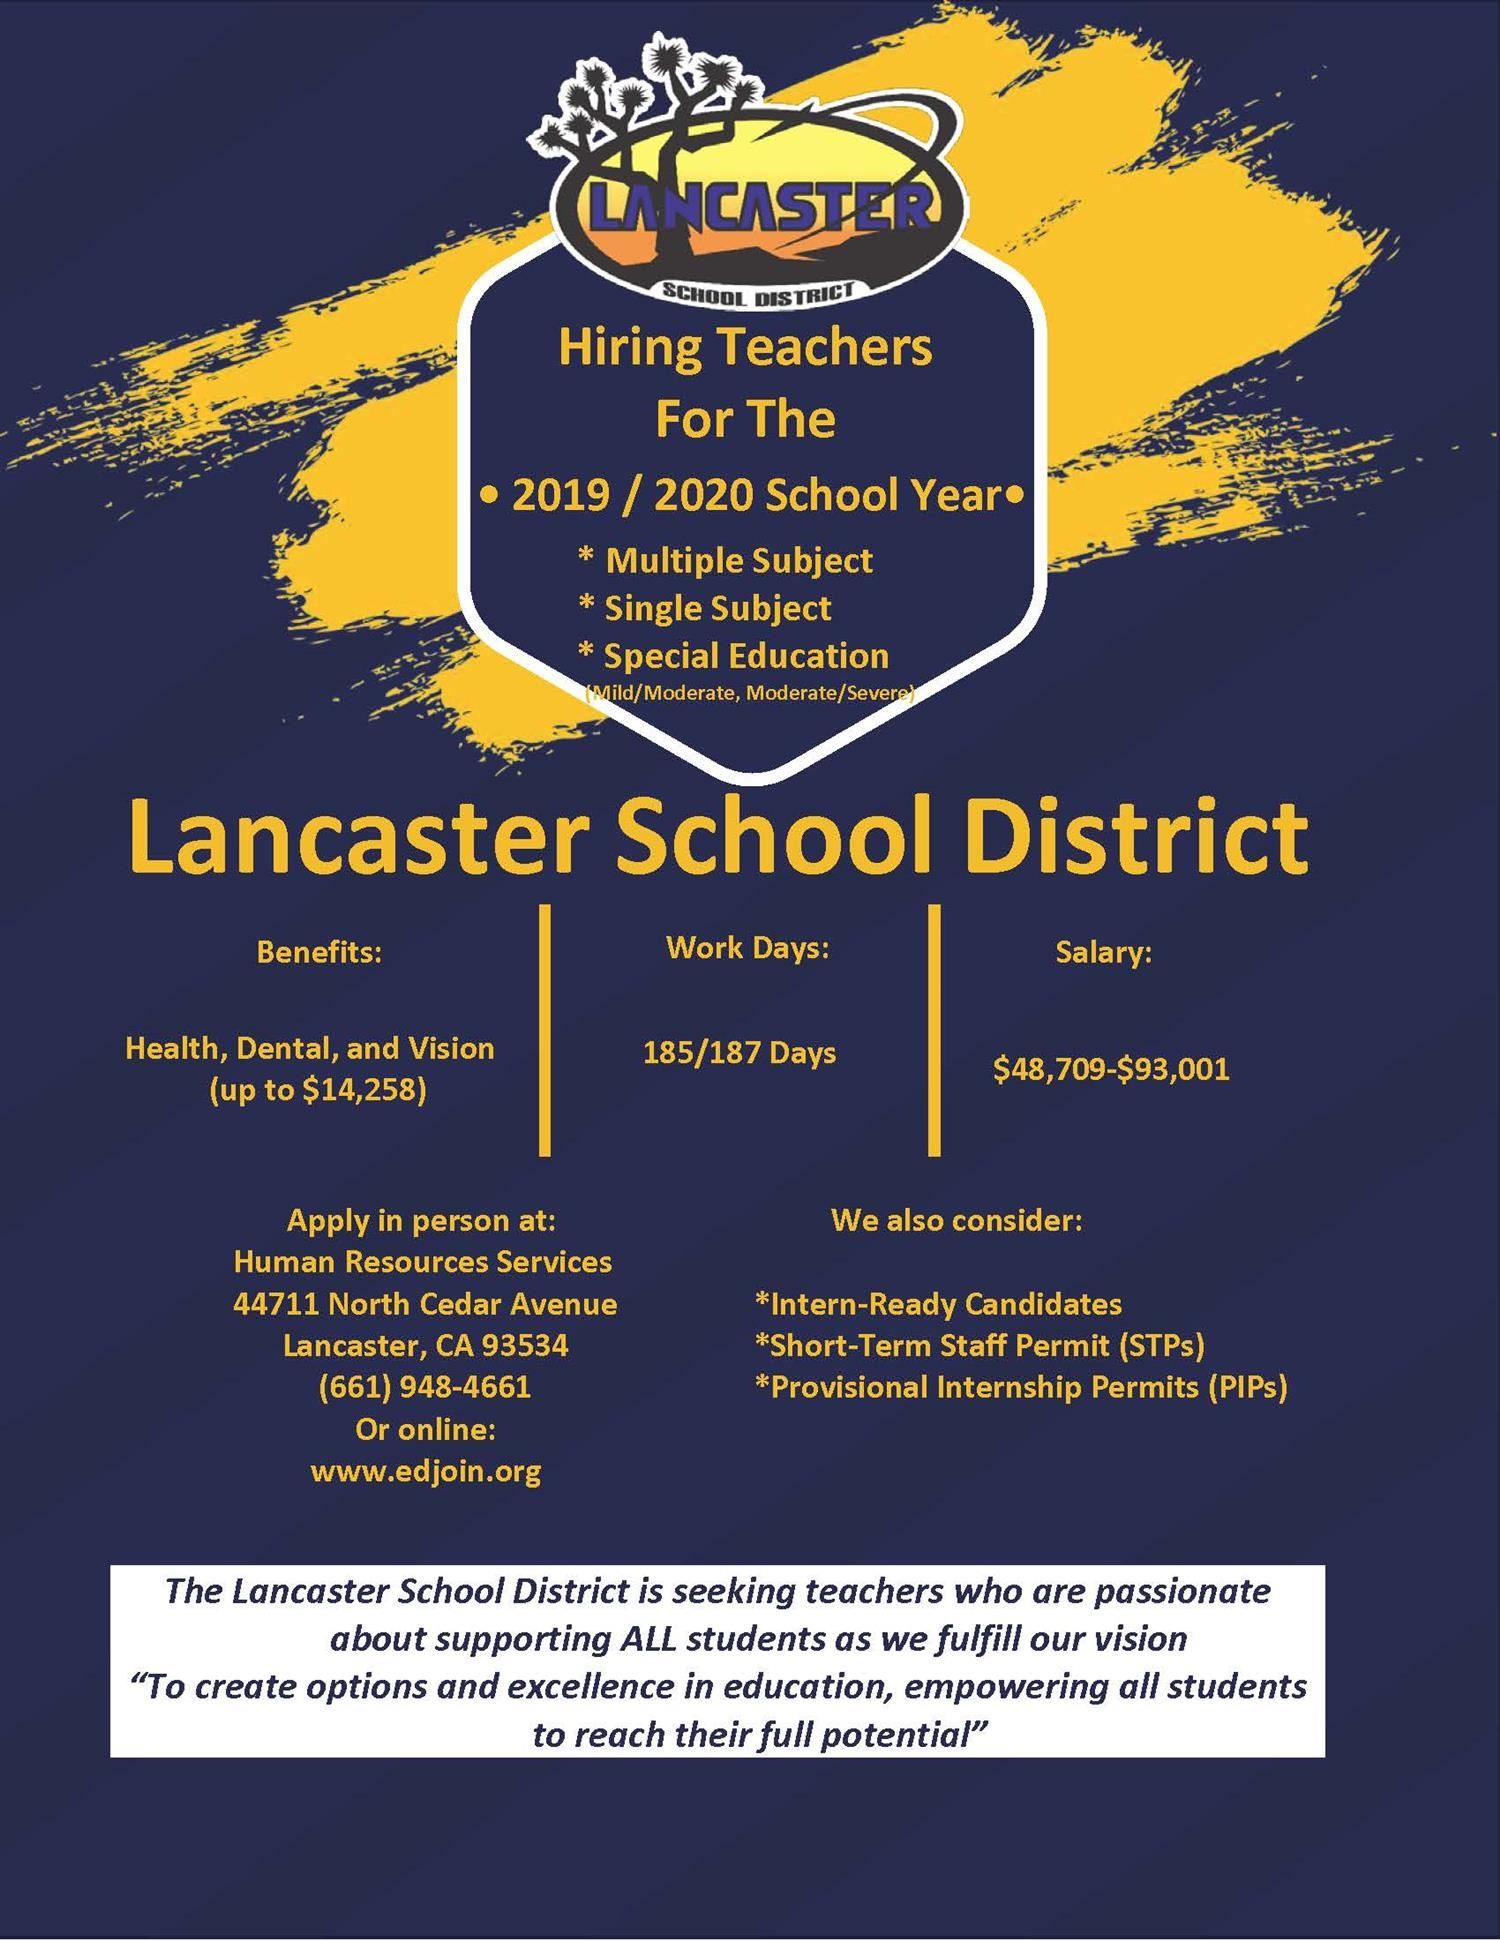 Hiring Teachers for the 2019-2020 School Year